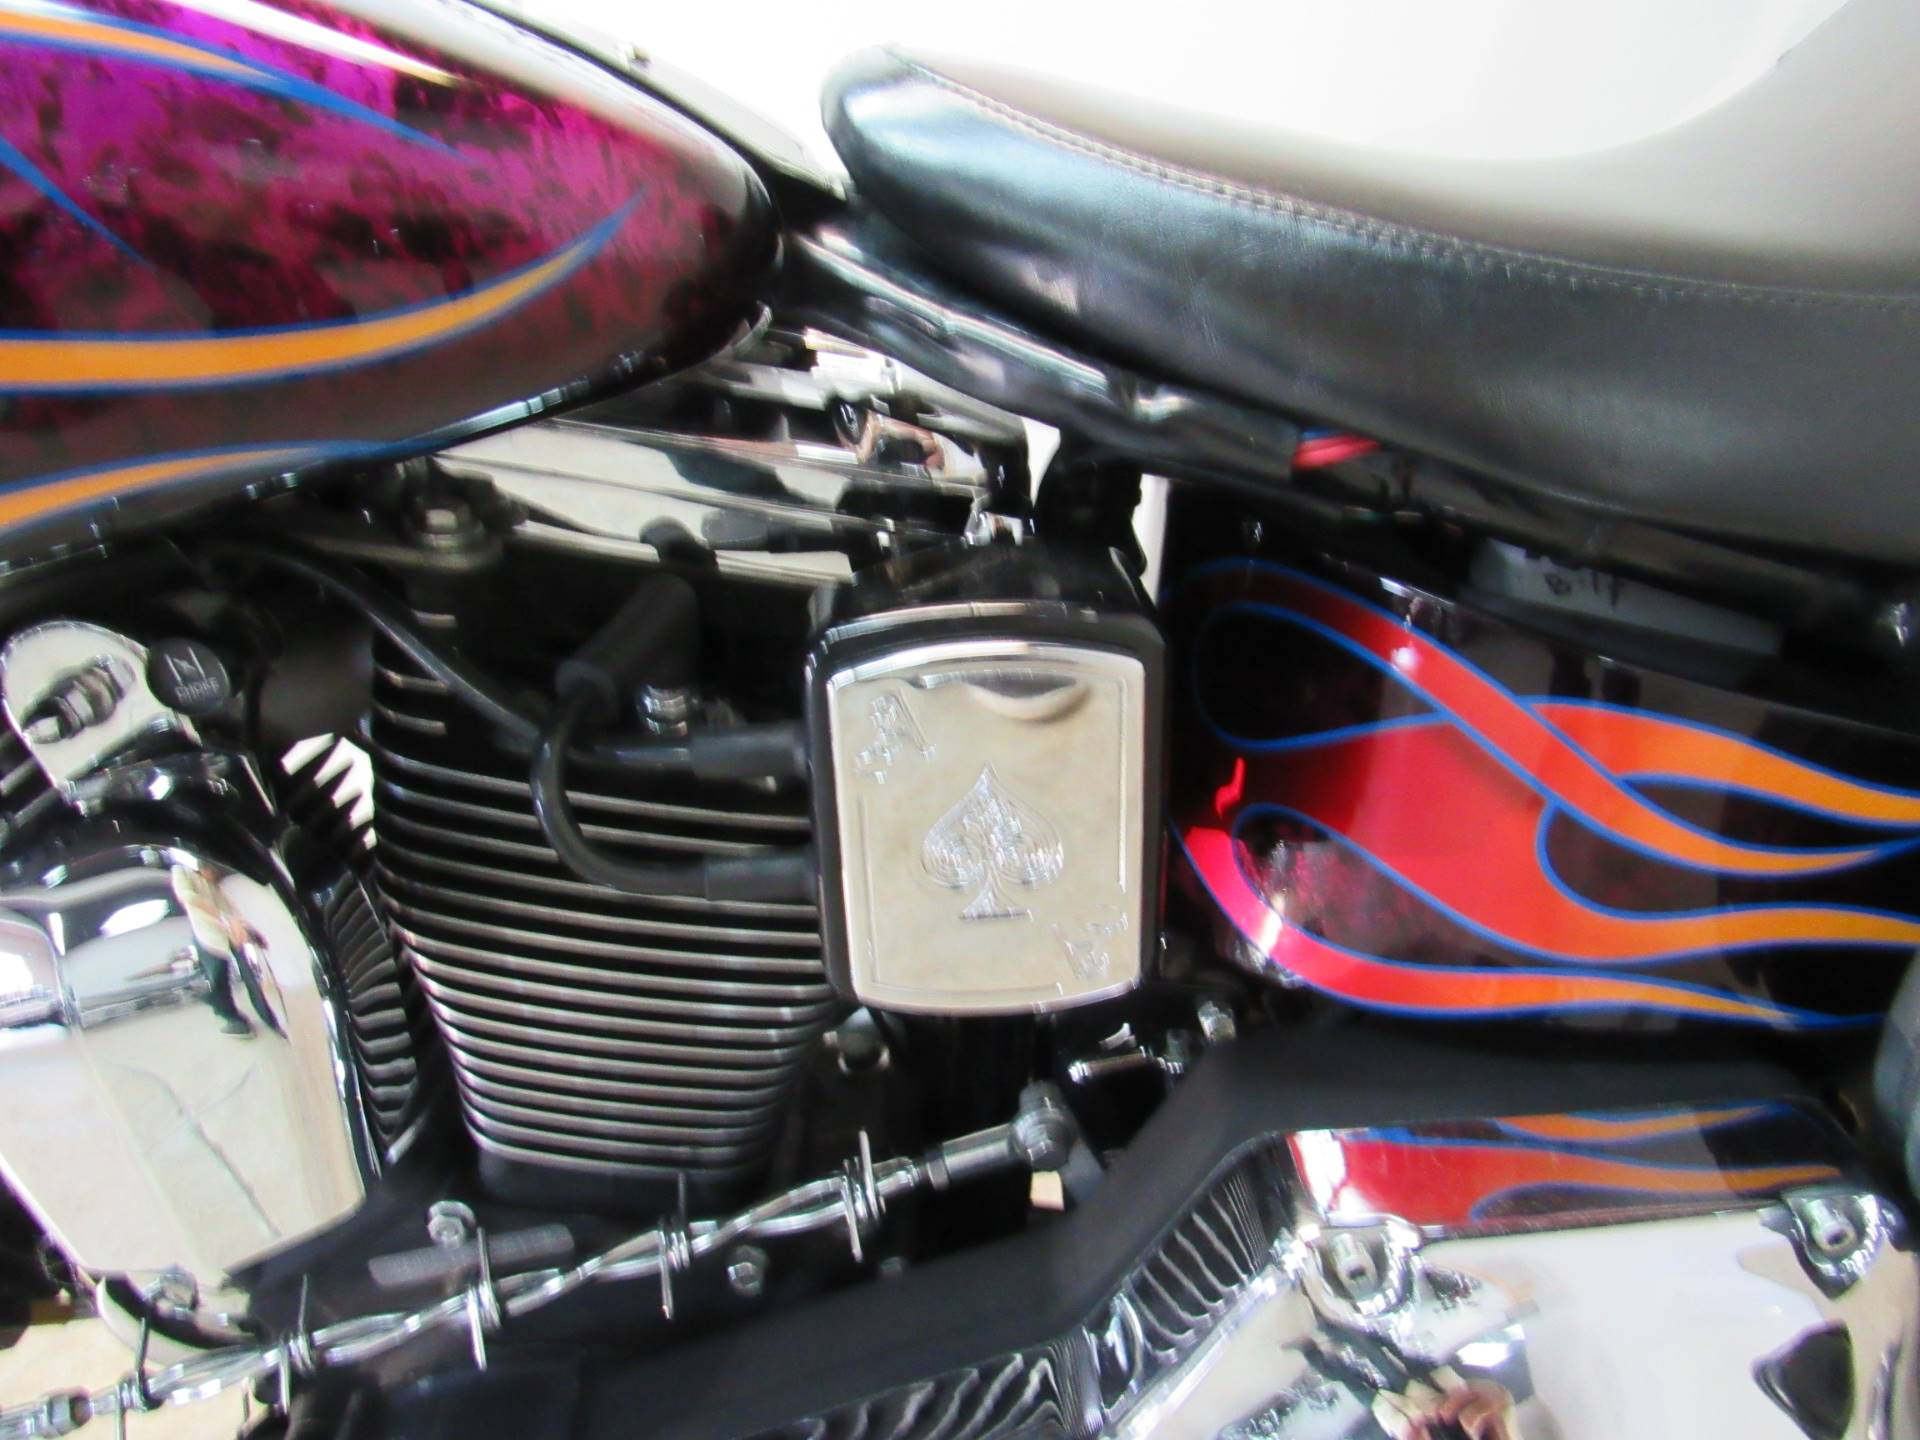 1996 Harley-Davidson softail custom in Temecula, California - Photo 28